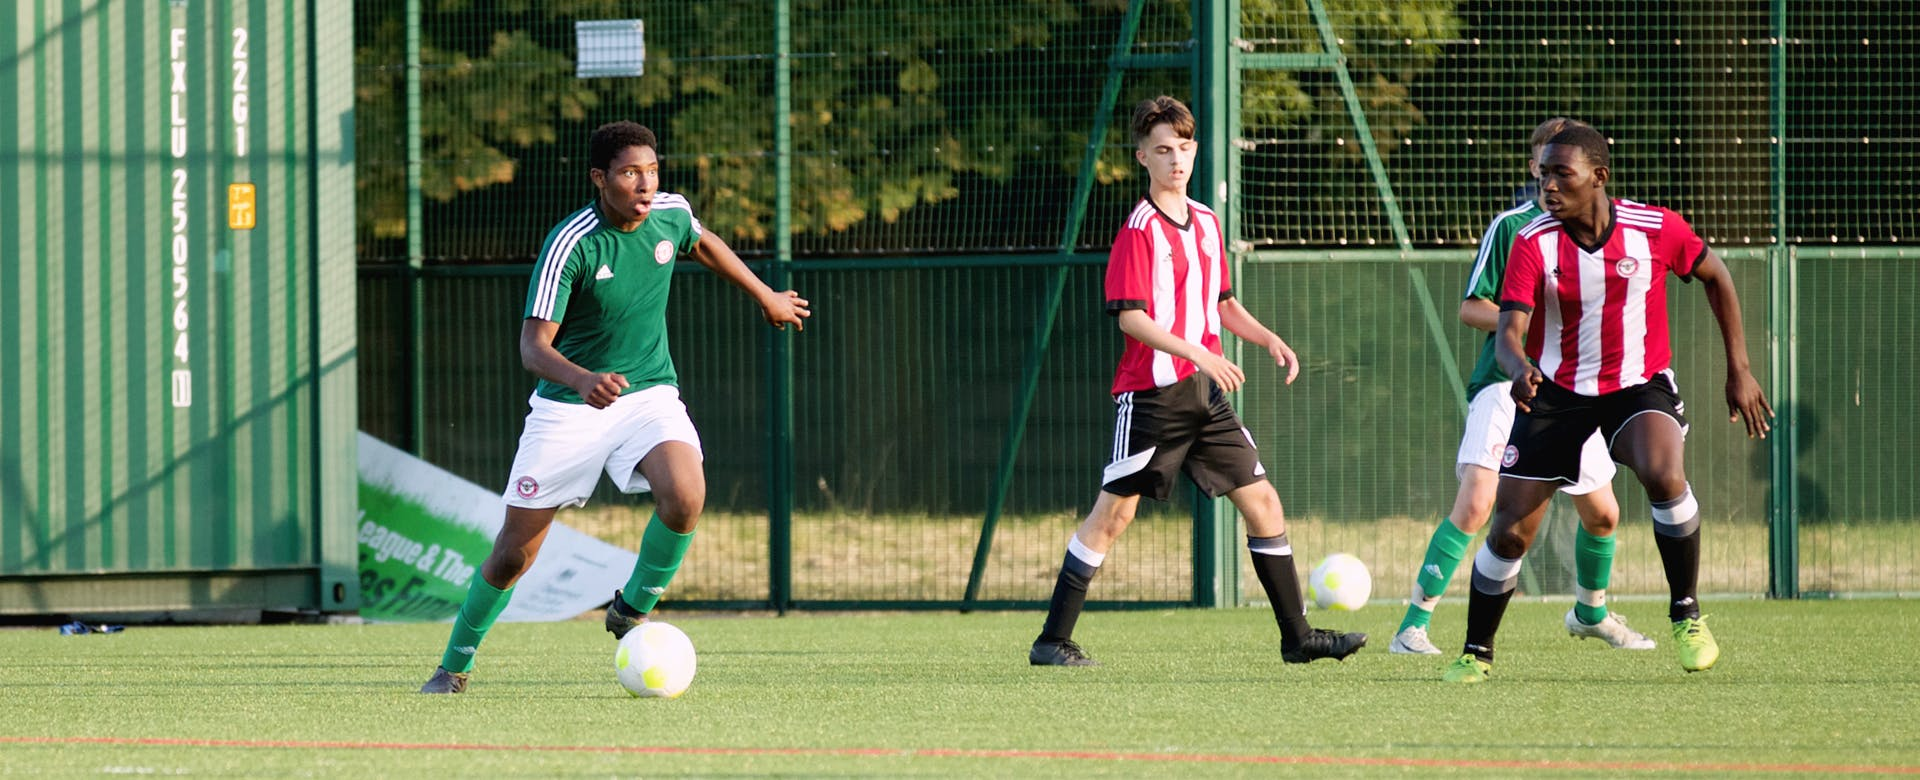 Brentford FC CST - Elite Football Development Trials (Tuesday 19th February 2019)